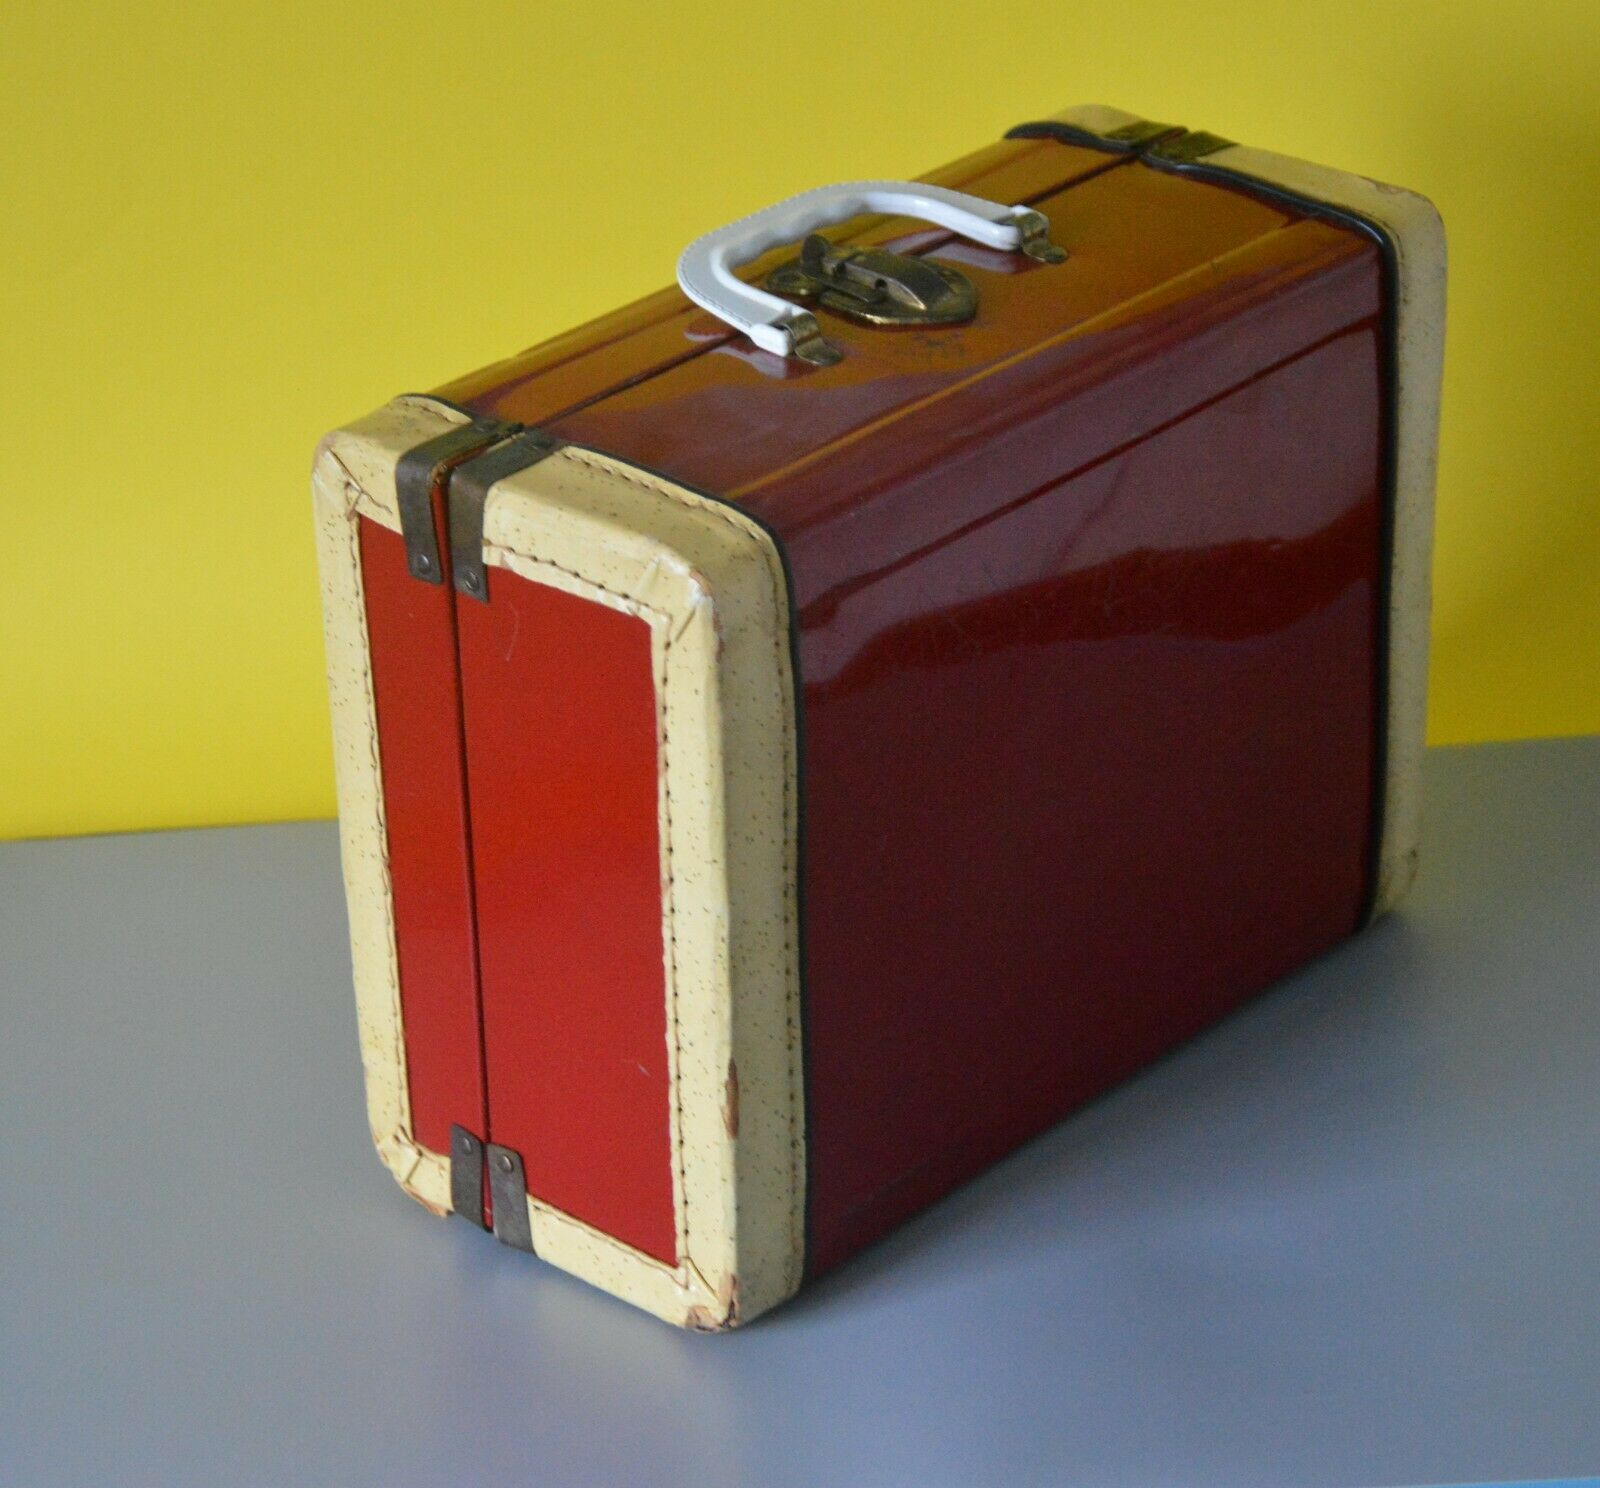 Cool Vintage Suitcase, Small Dimensione, Multi Purpose Case, rosso Coloree, With Leather T